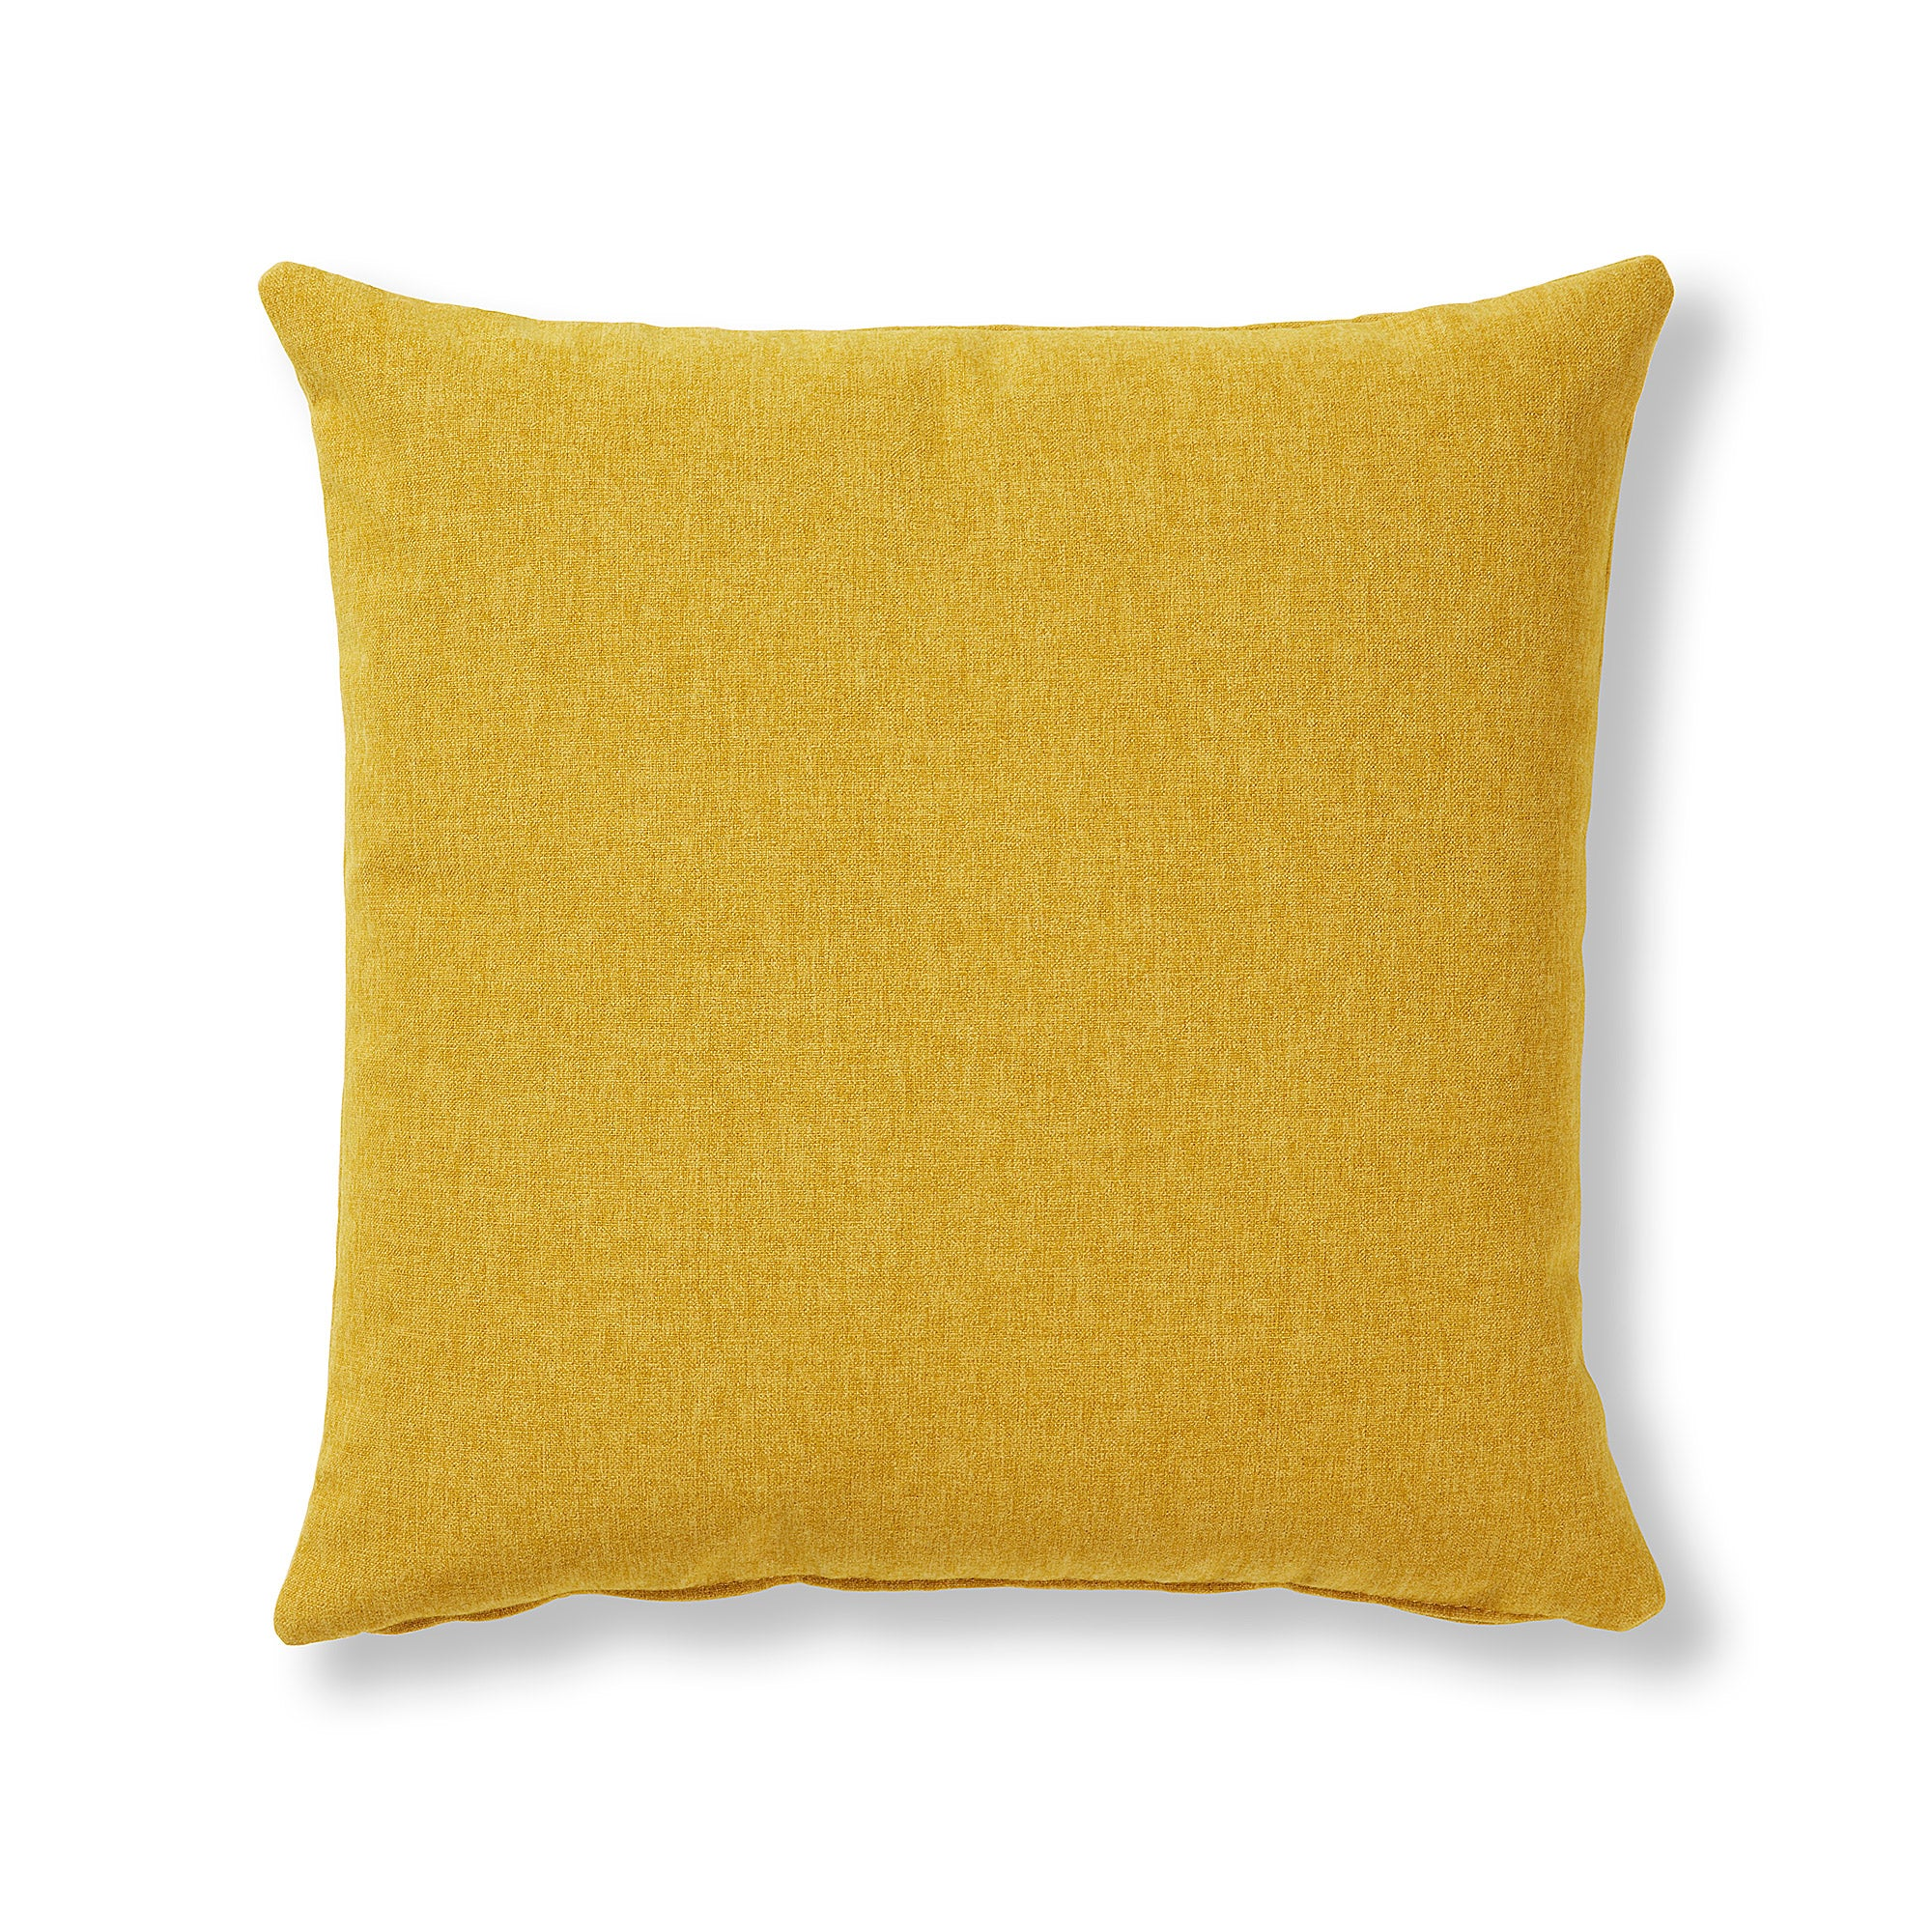 Minda Cushion 45x45 fabric mustard, Decor - Home-Buy Interiors